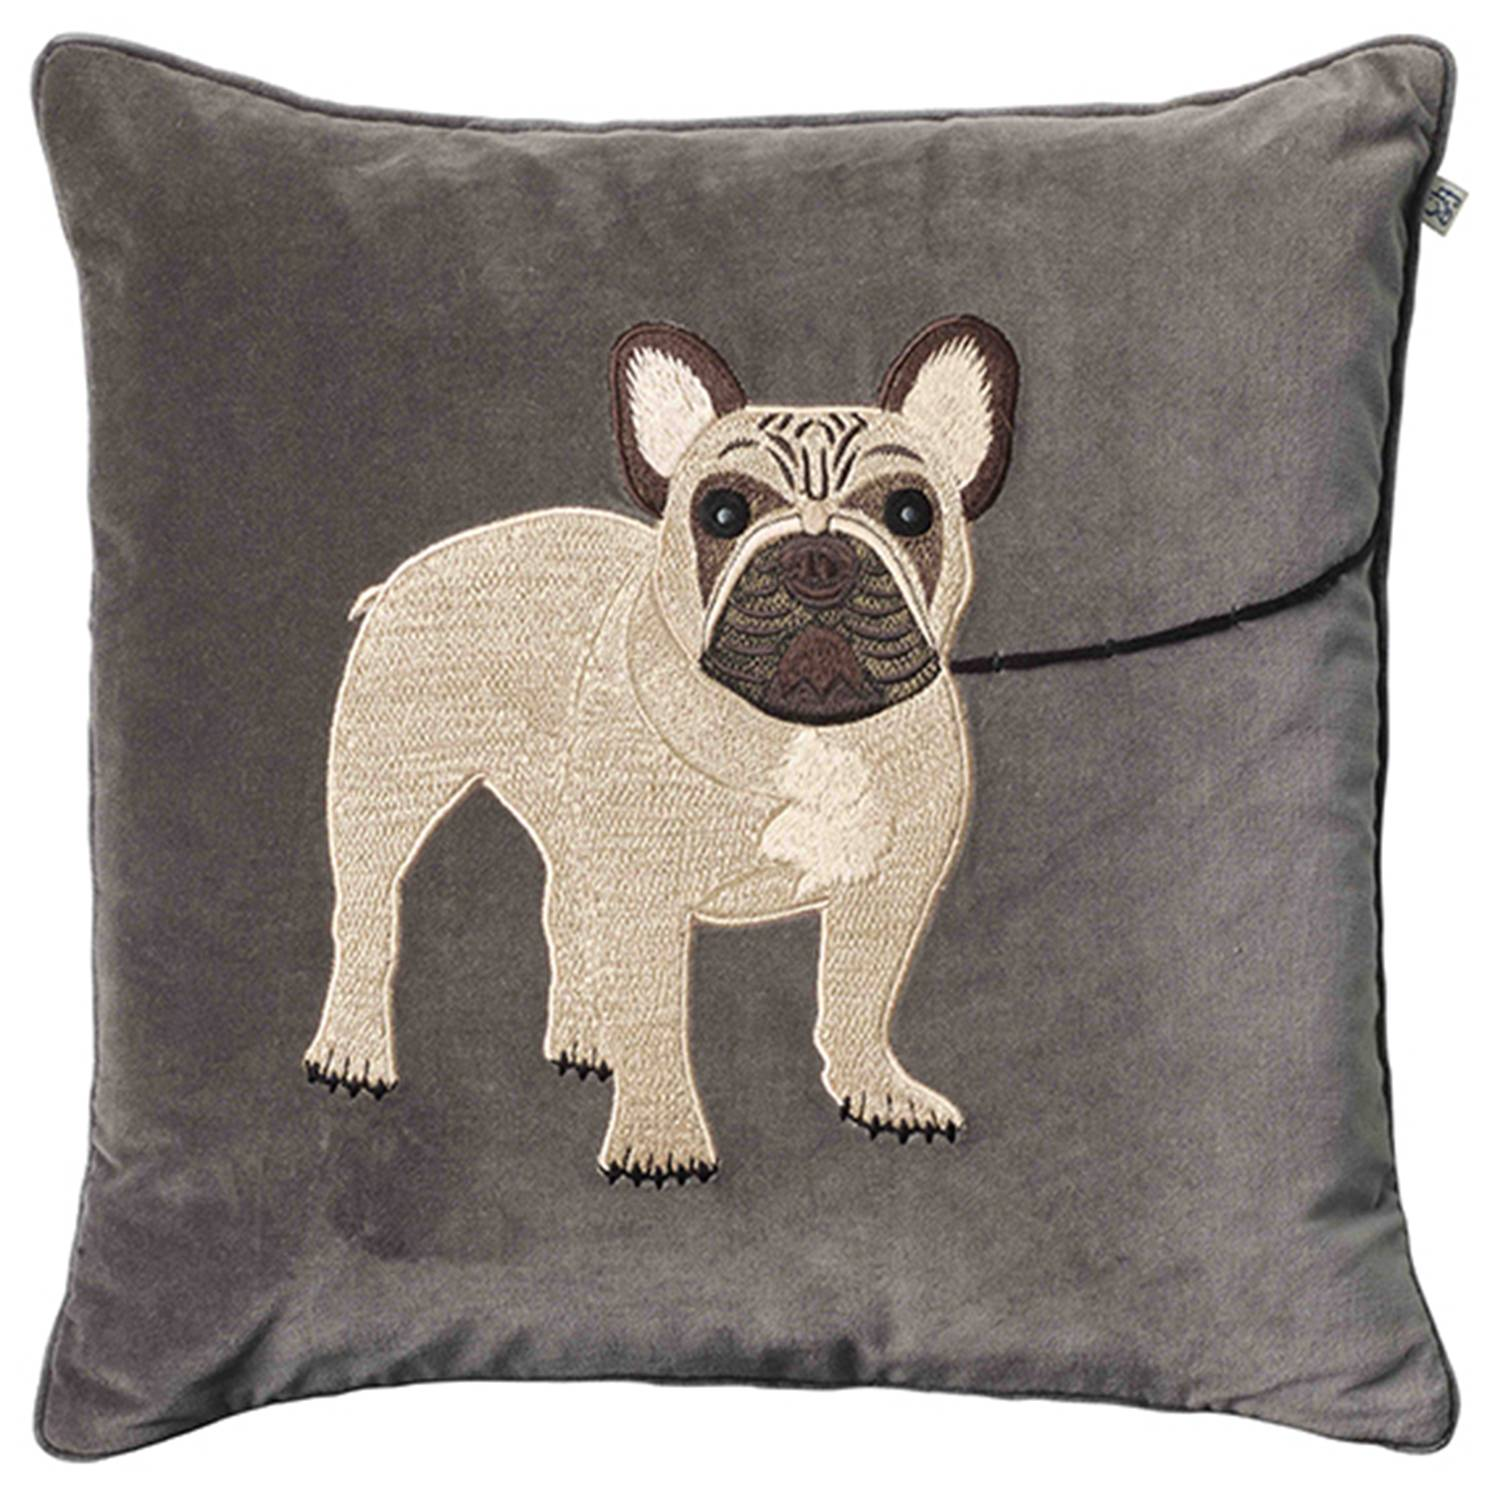 Chhatwal & Jonsson Embroidered French Bull Dog Cushion Cover, 50x50 cm